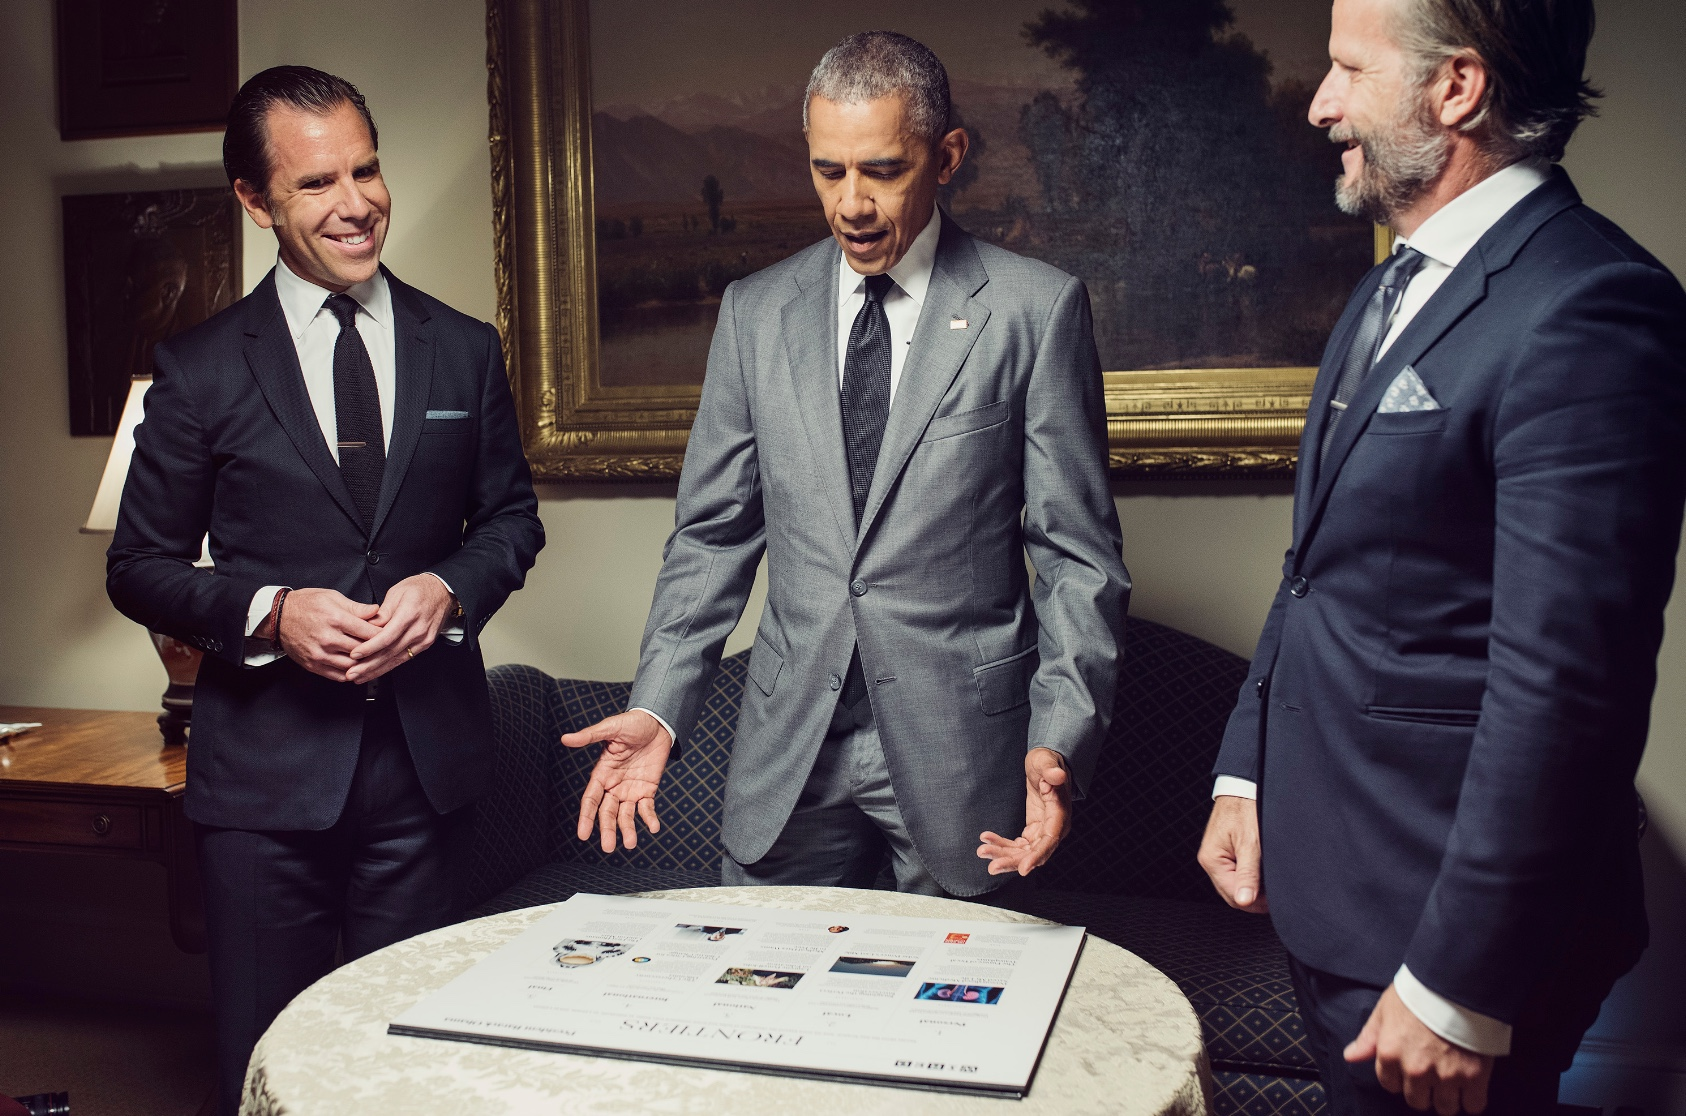 In the Roosevelt Room of the White House, President Barack Obama discusses plans for the issue he is guest editing with WIRED's Editor-in-Chief Scott Dadich and Editorial Director Robert Capps.CHRISTOPHER ANDERSON/MAGNUM PHOTOS